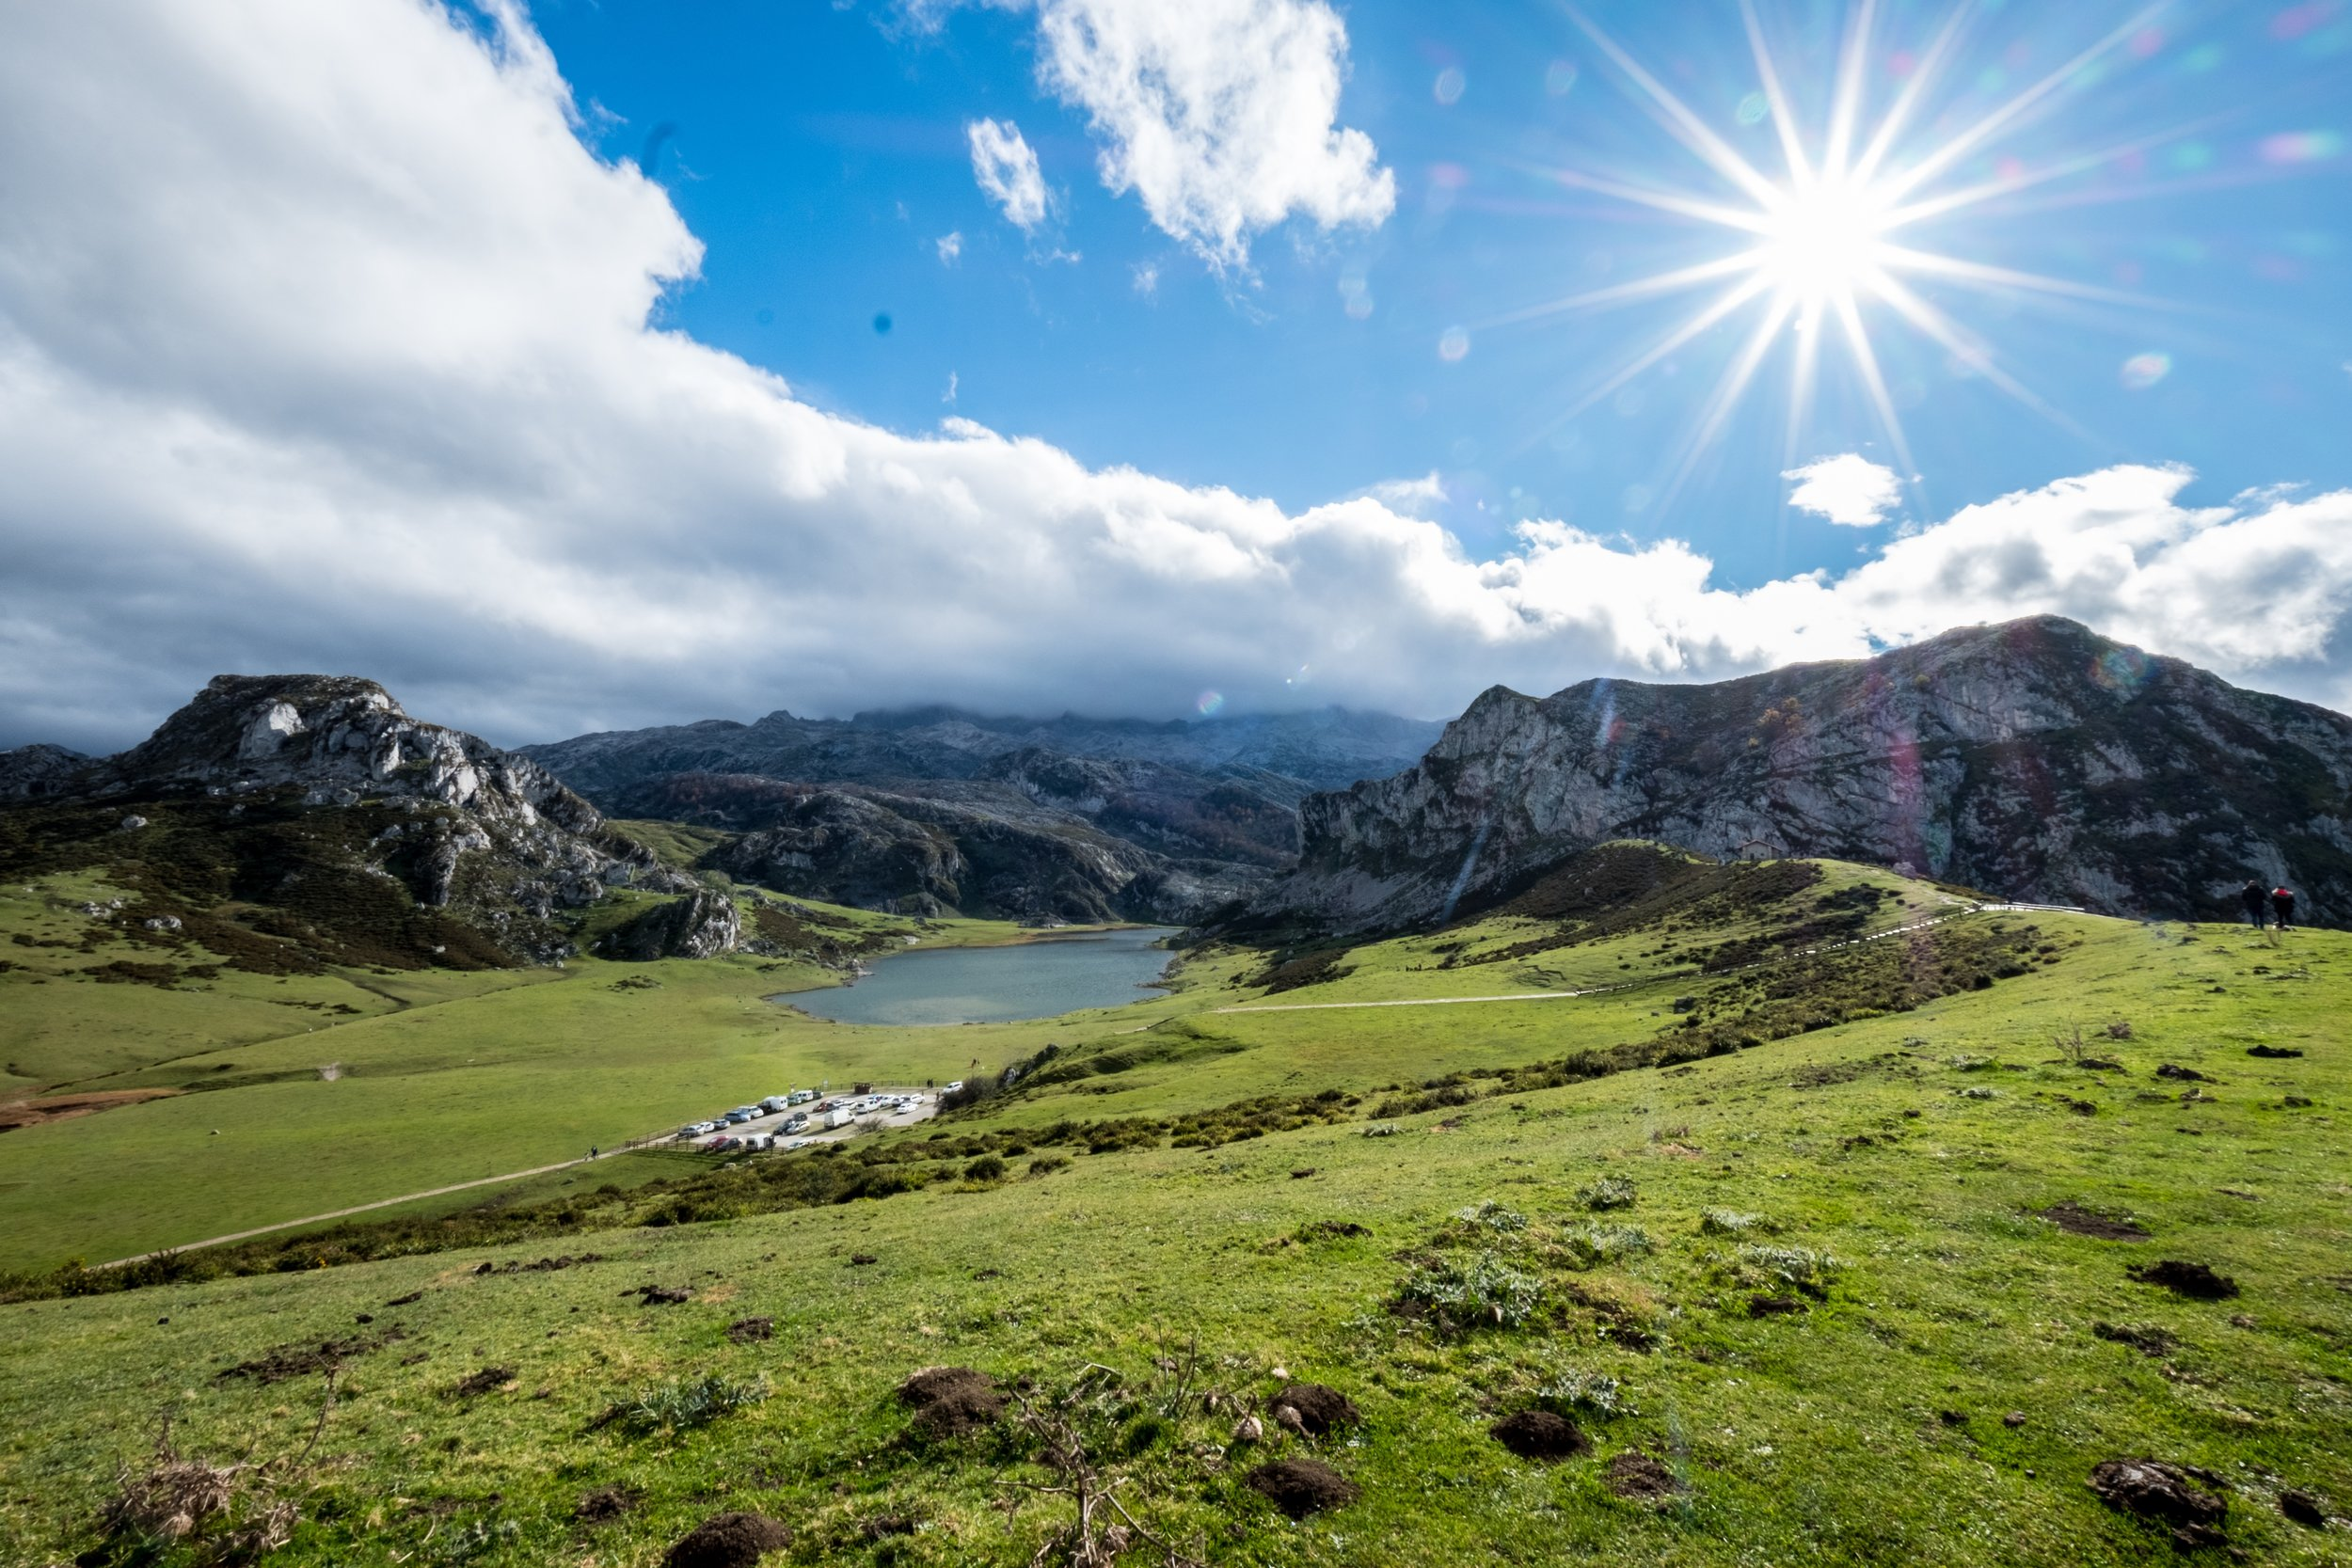 Picos de Europa - Awesome mountains in the Northern Spanish region